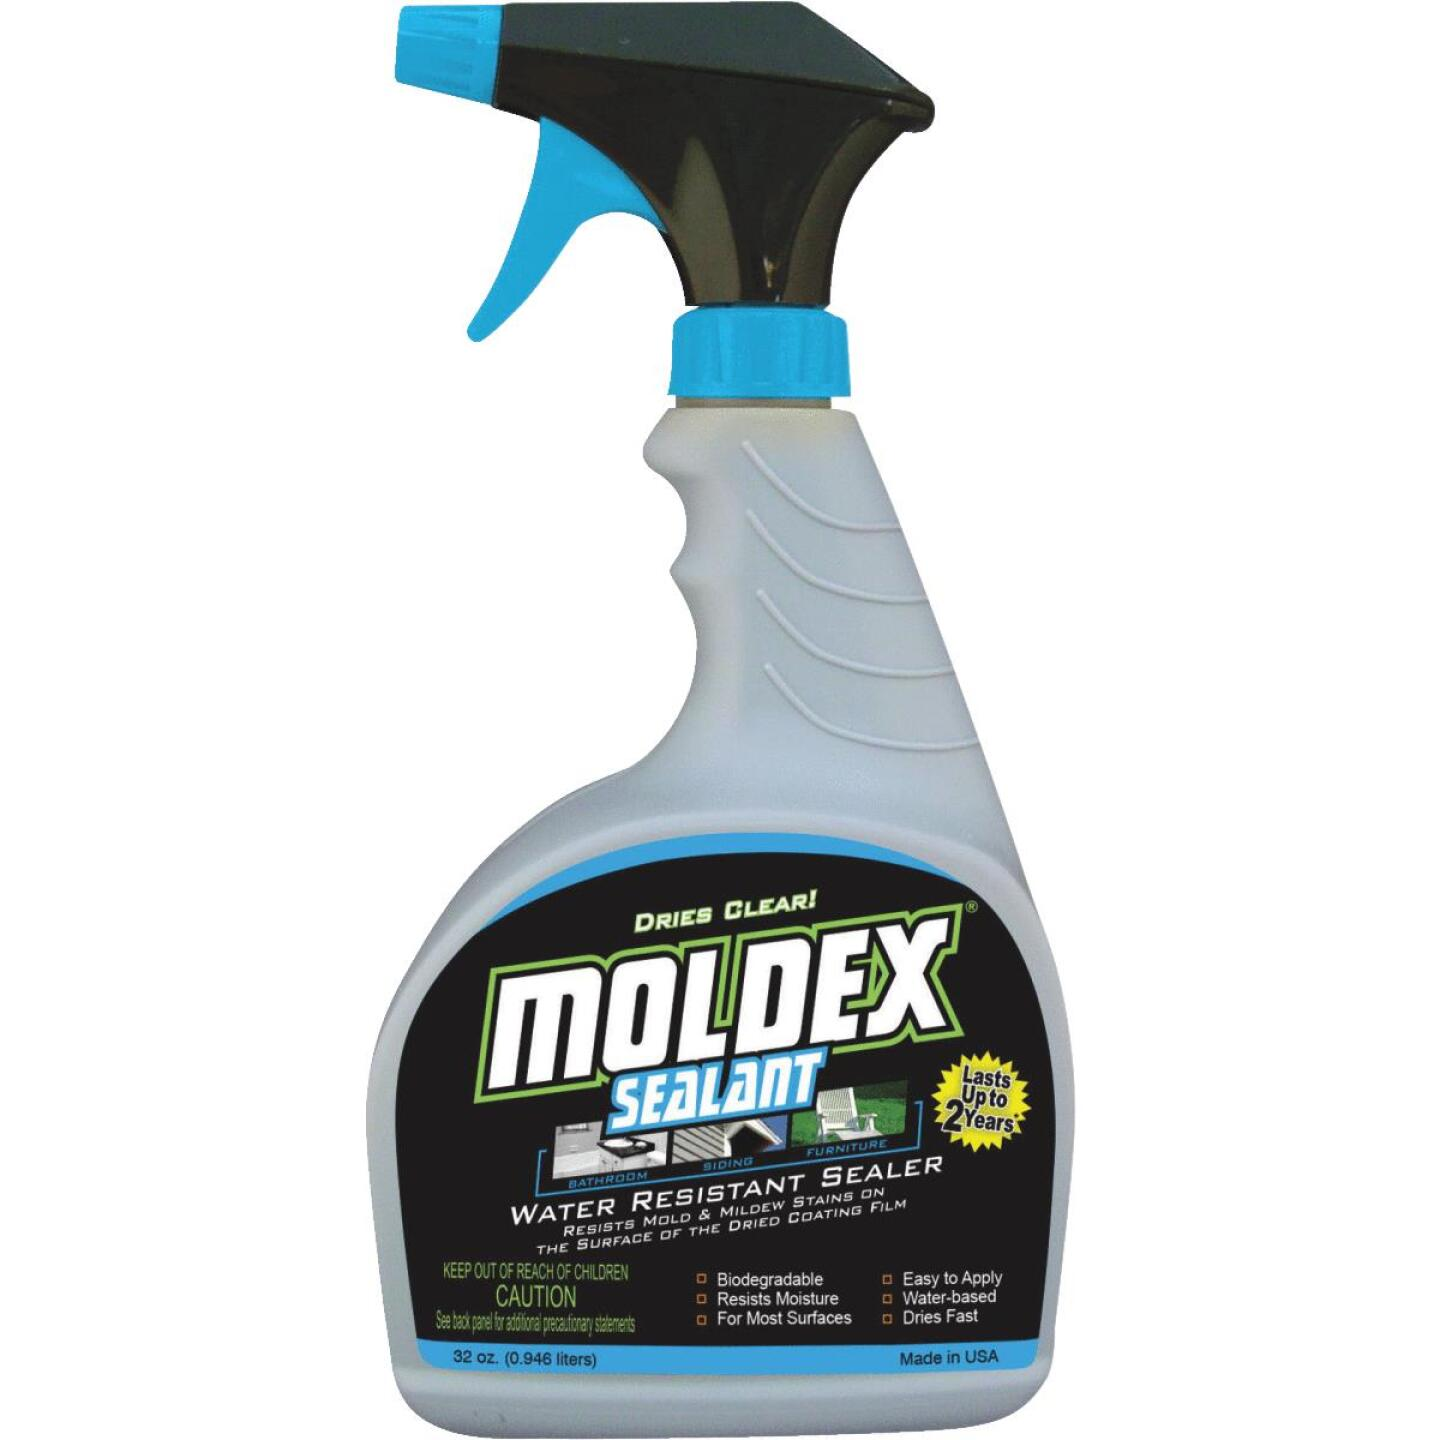 Moldex 32 Oz. Trigger Spray 125 Sq. Ft. Coverage Algae & Mold Protectant Image 1